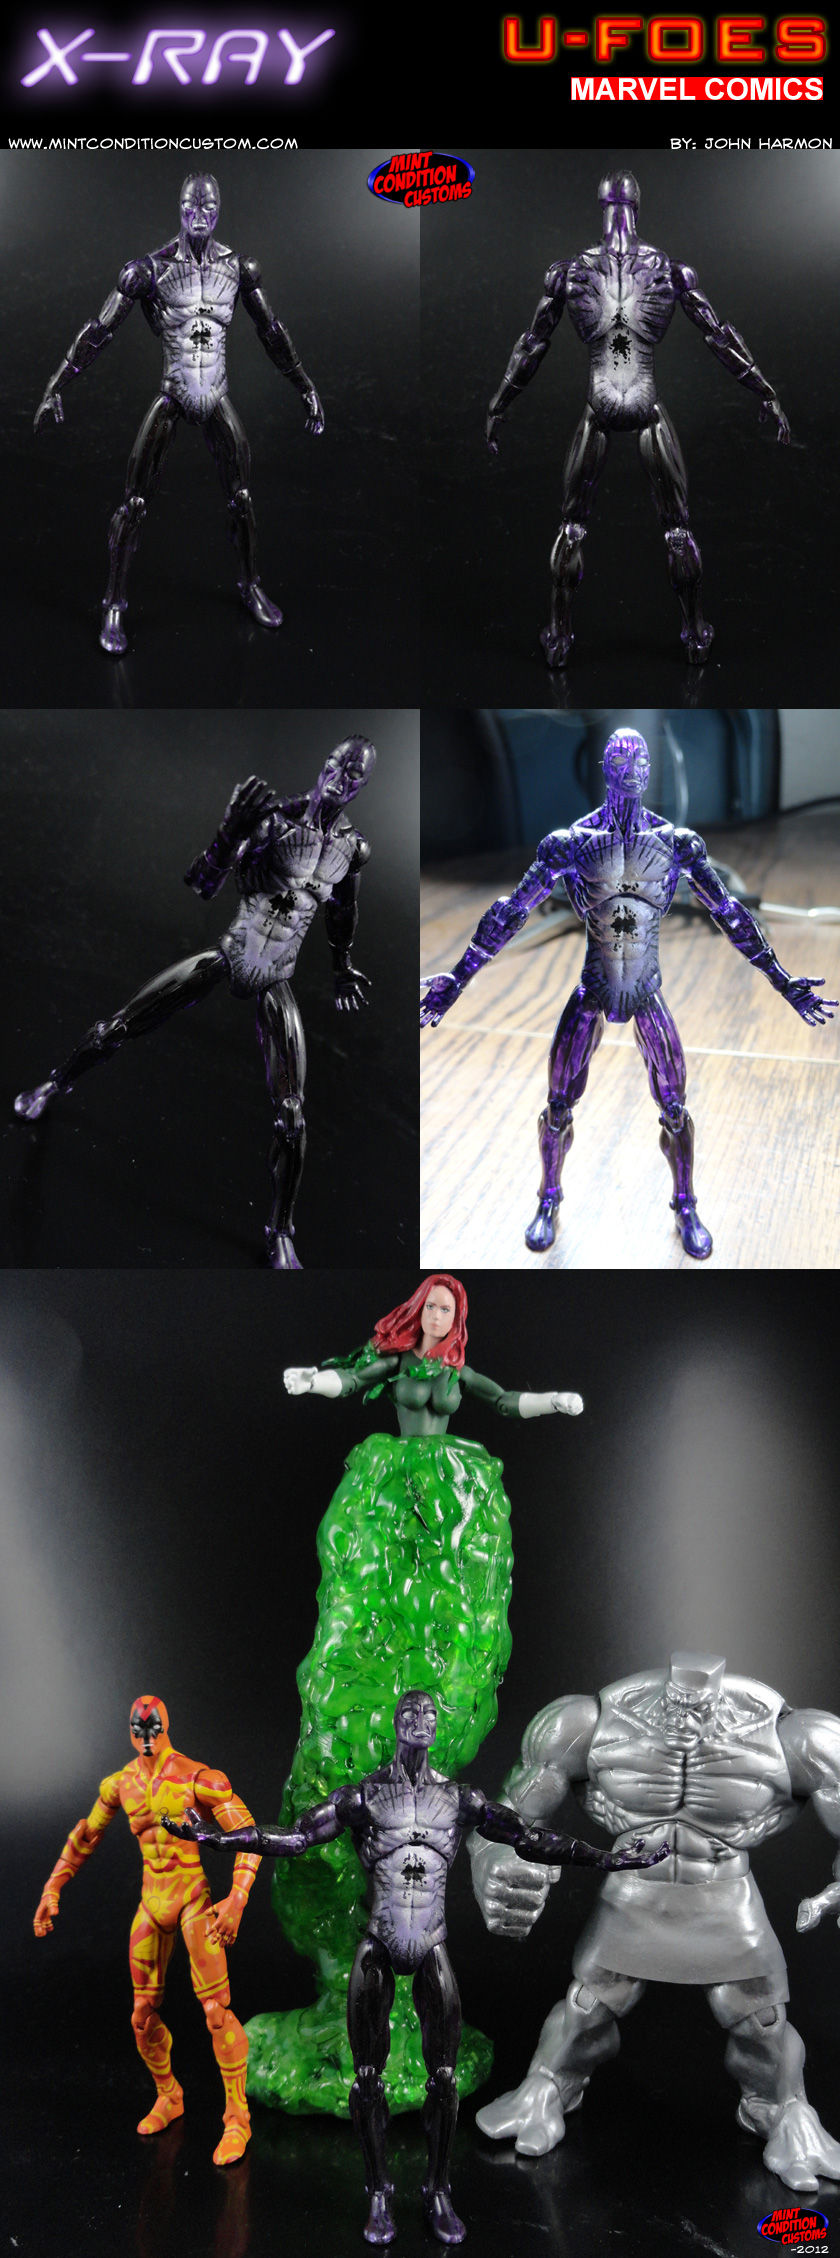 "Custom U-Foes X-Ray 3 3/4"" Marvel Universe Action Figure"